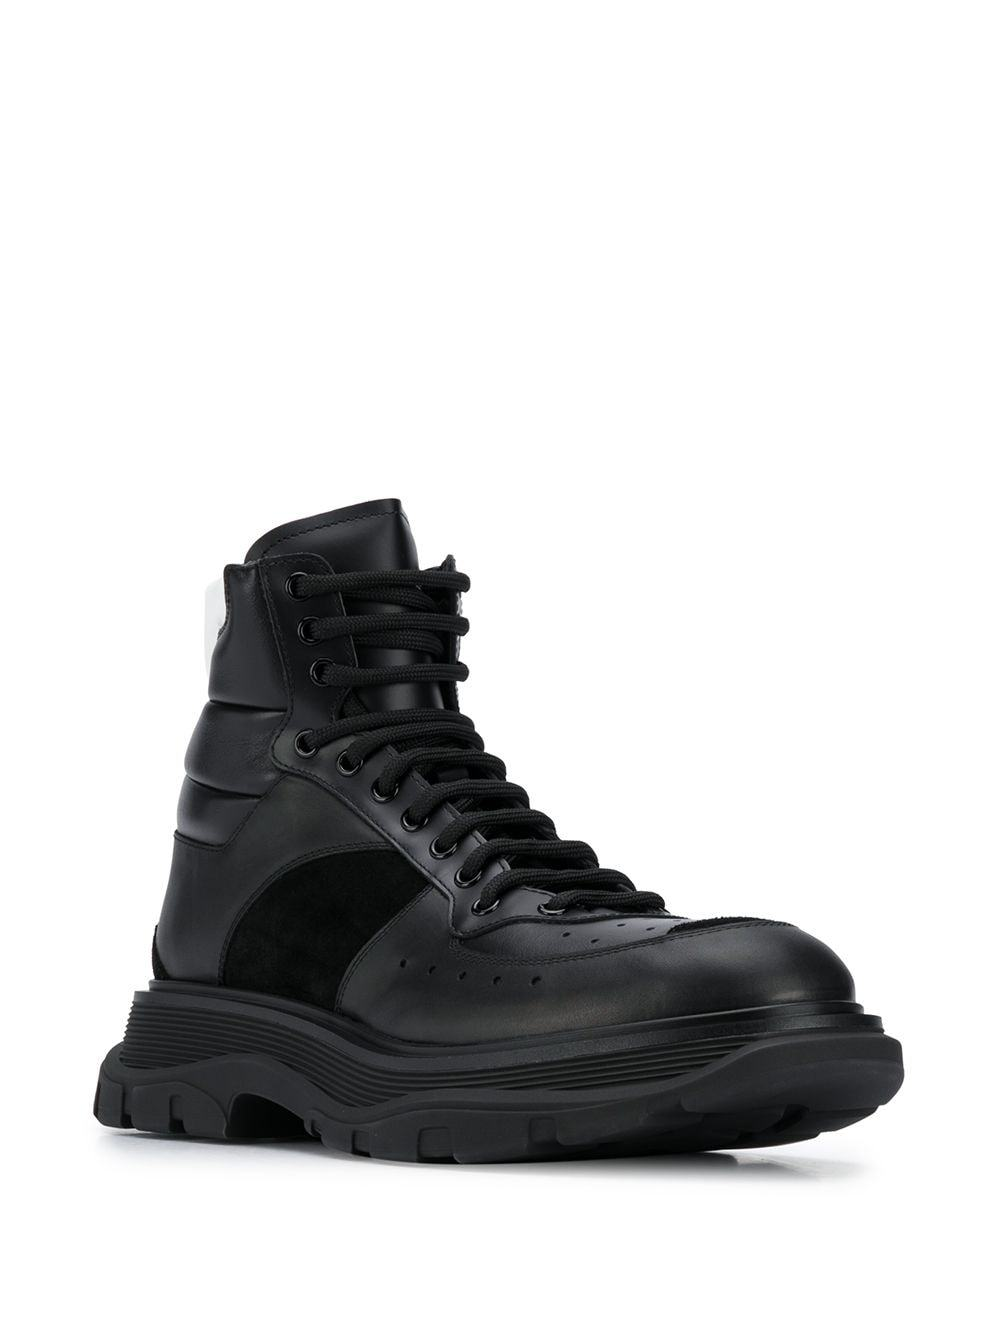 Alexander McQueen Lace Up High Top Sneakers Black